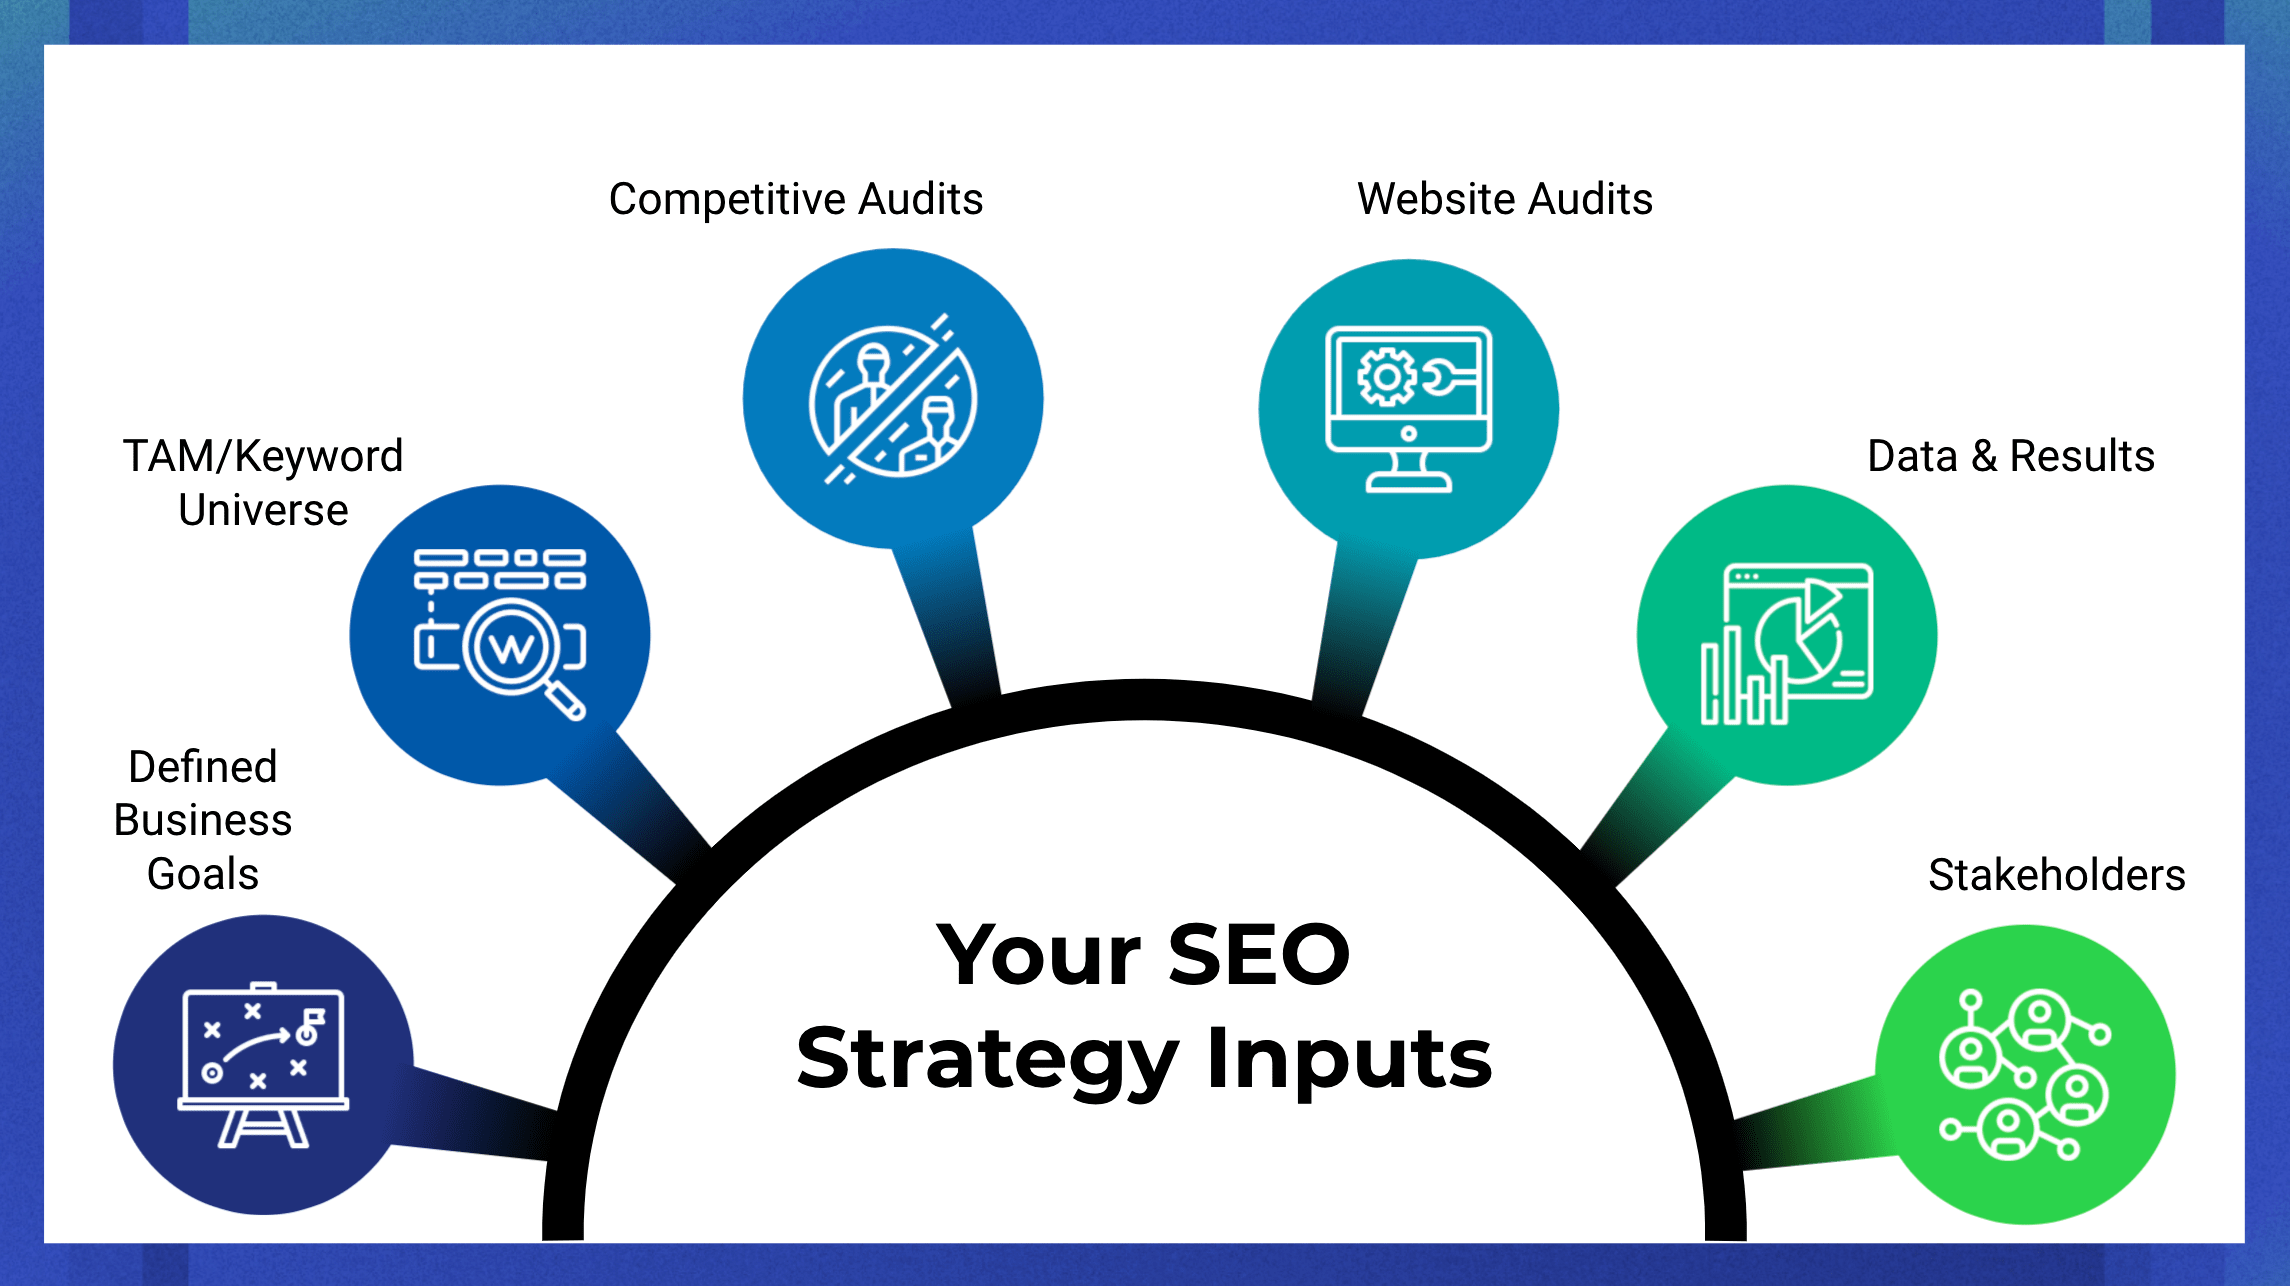 SEO strategy required inputs